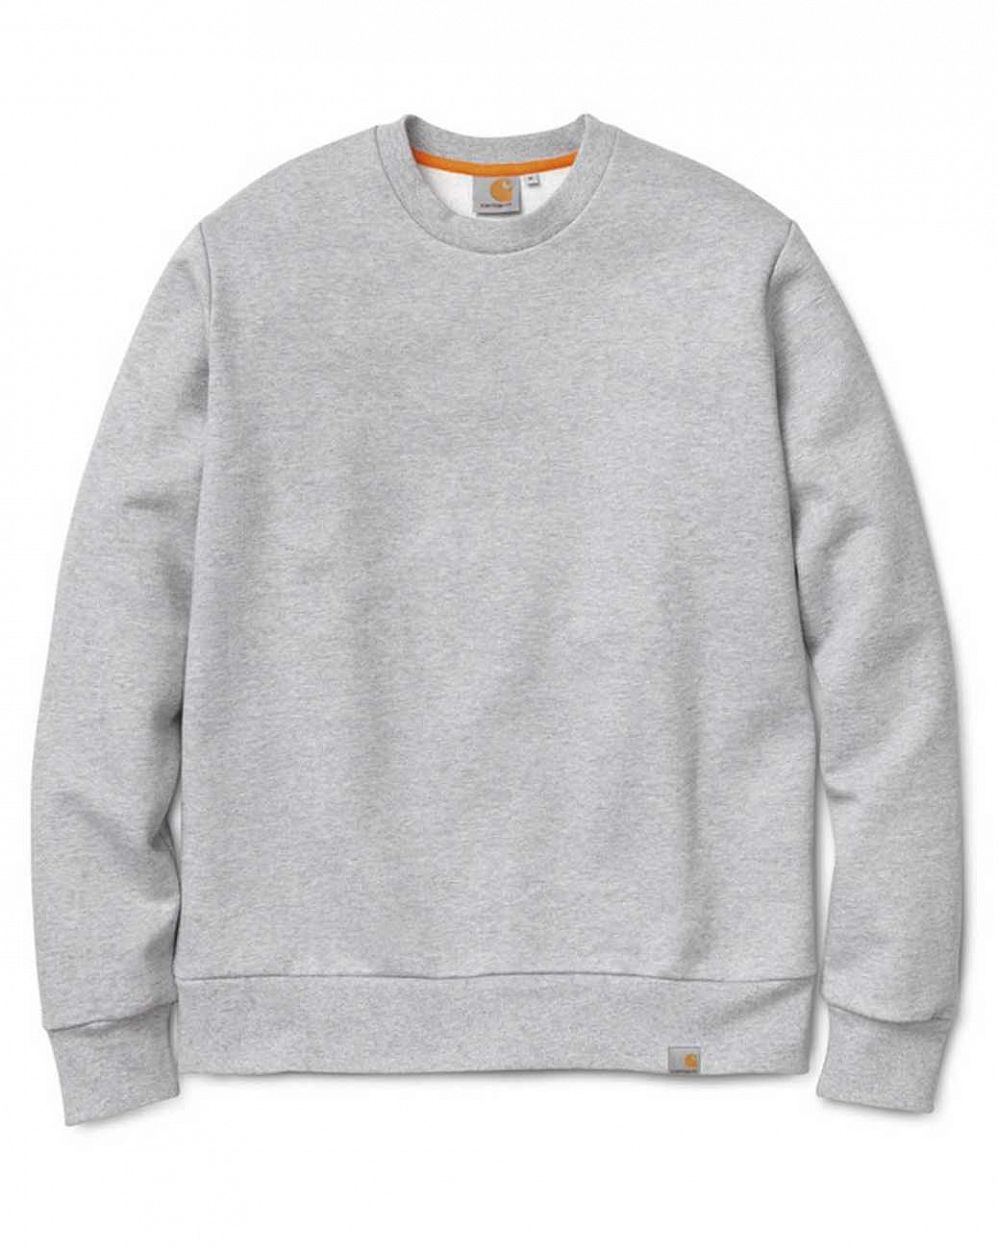 Толстовка свитшот Carhartt WIP Bronks Sweat Grey Navy отзывы